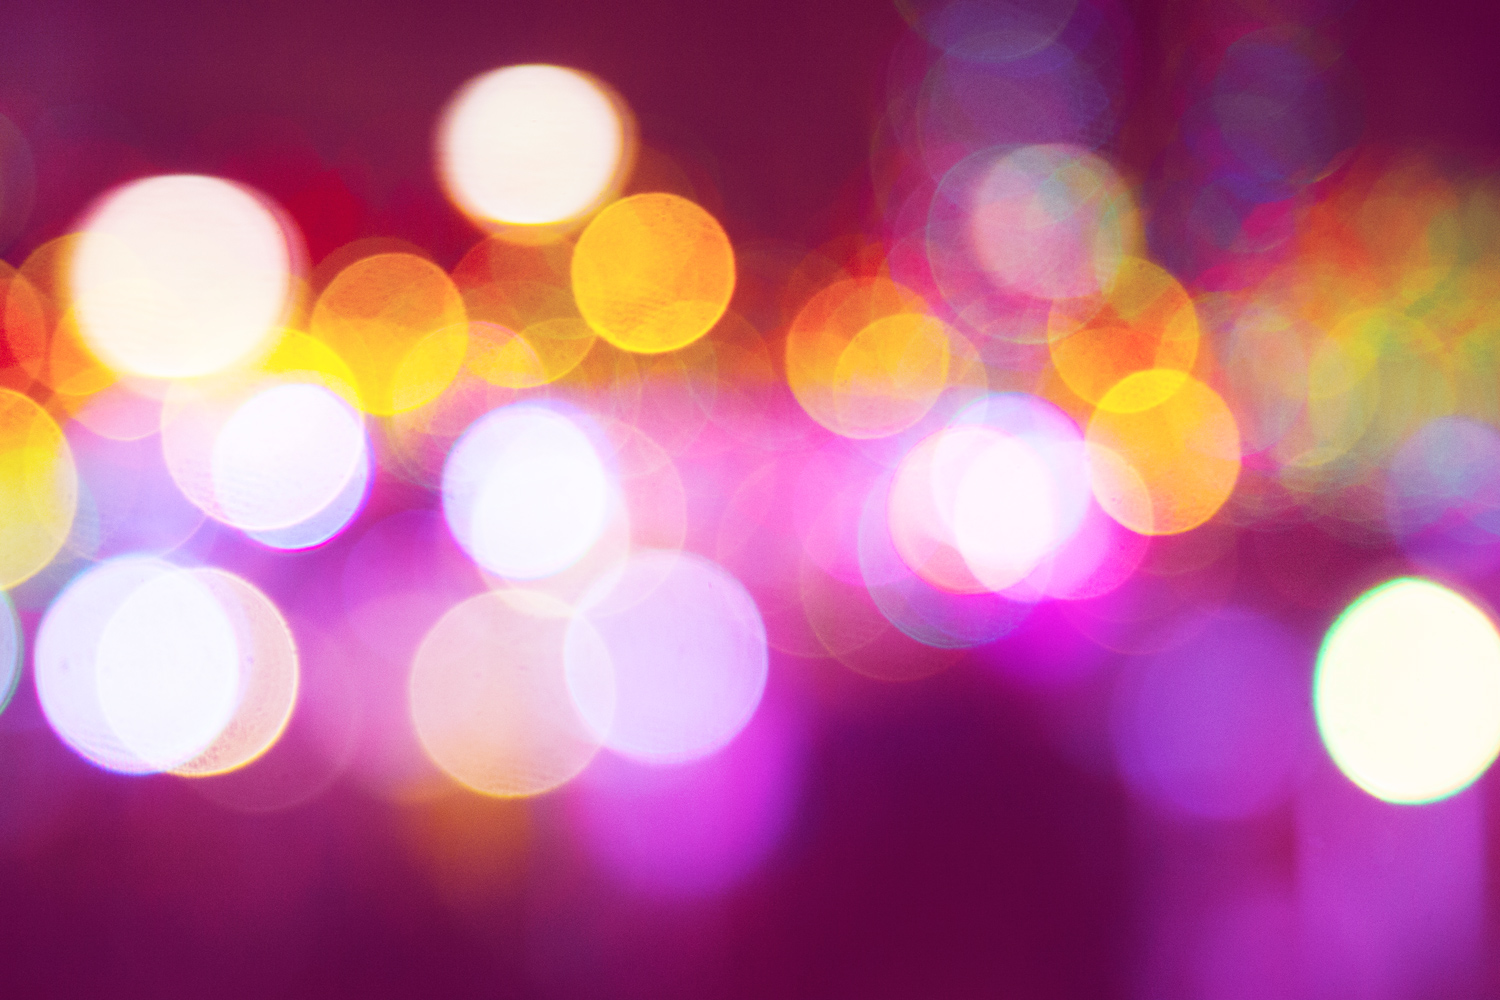 https://i1.wp.com/digital-photography-school.com/wp-content/uploads/2019/05/pink_bokeh.jpg?resize=1500%2C1000&ssl=1